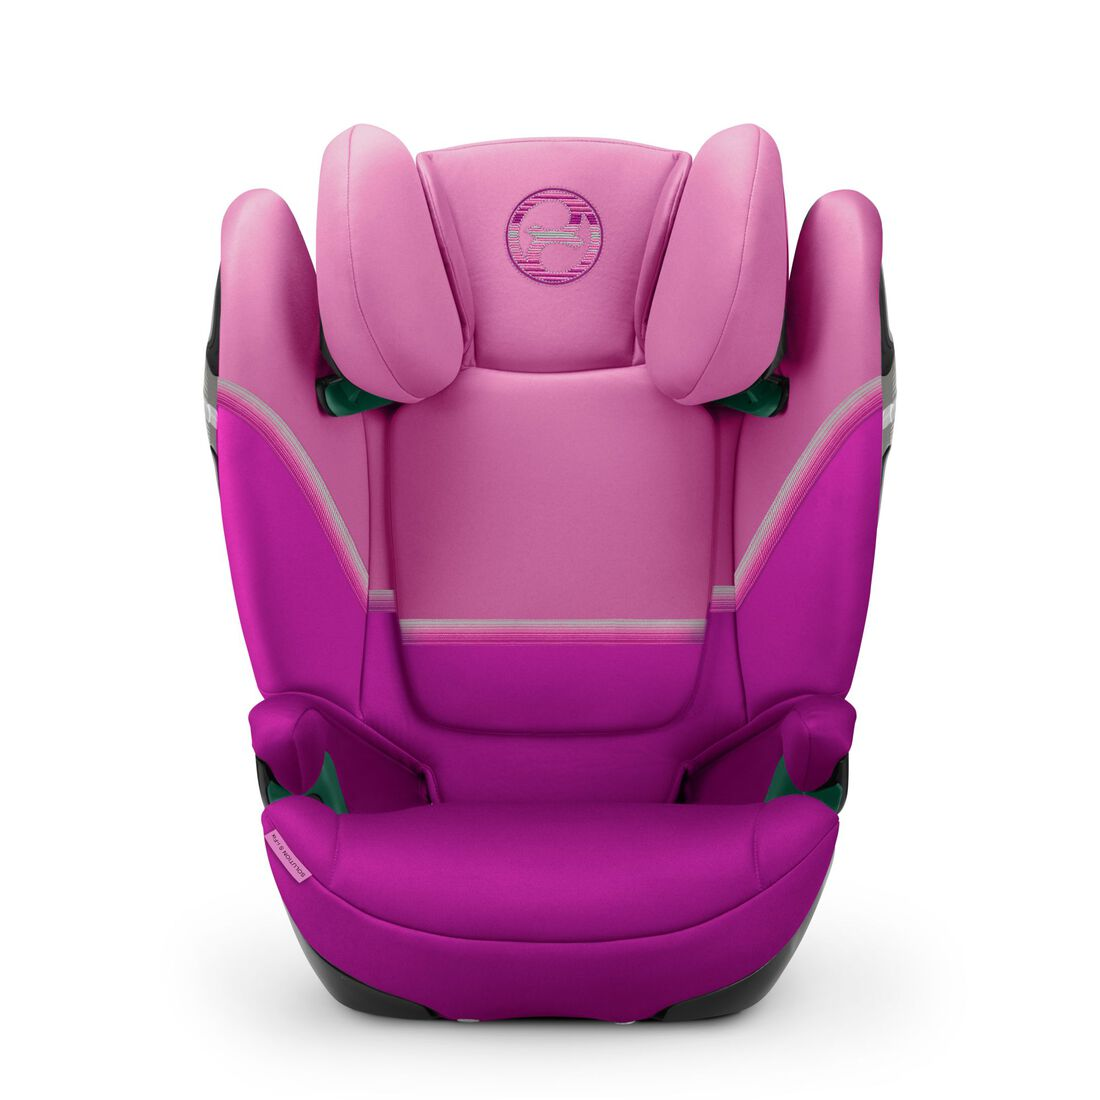 CYBEX Solution S i-Fix - Magnolia Pink in Magnolia Pink large image number 2